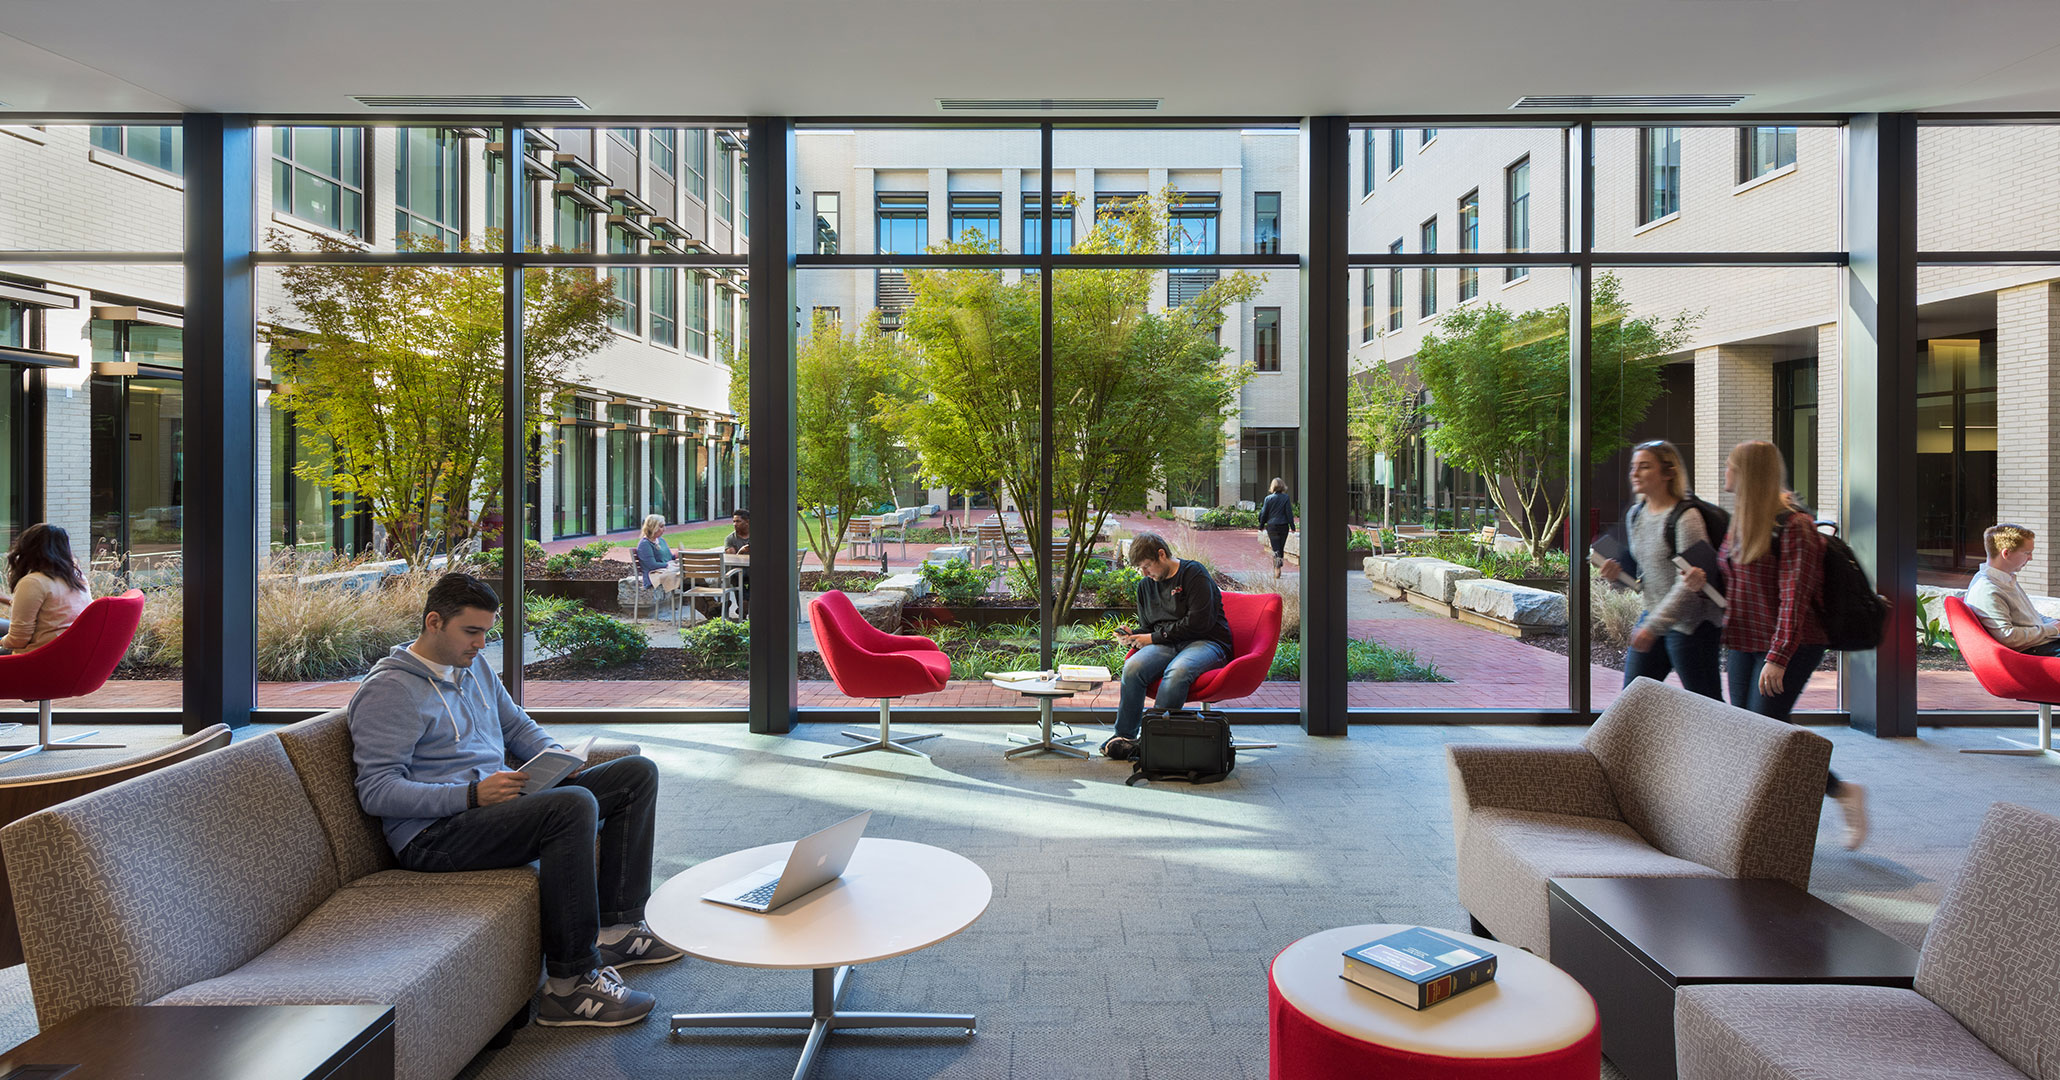 UofSC worked with Boudreaux architects to design the café space at the new Law School.